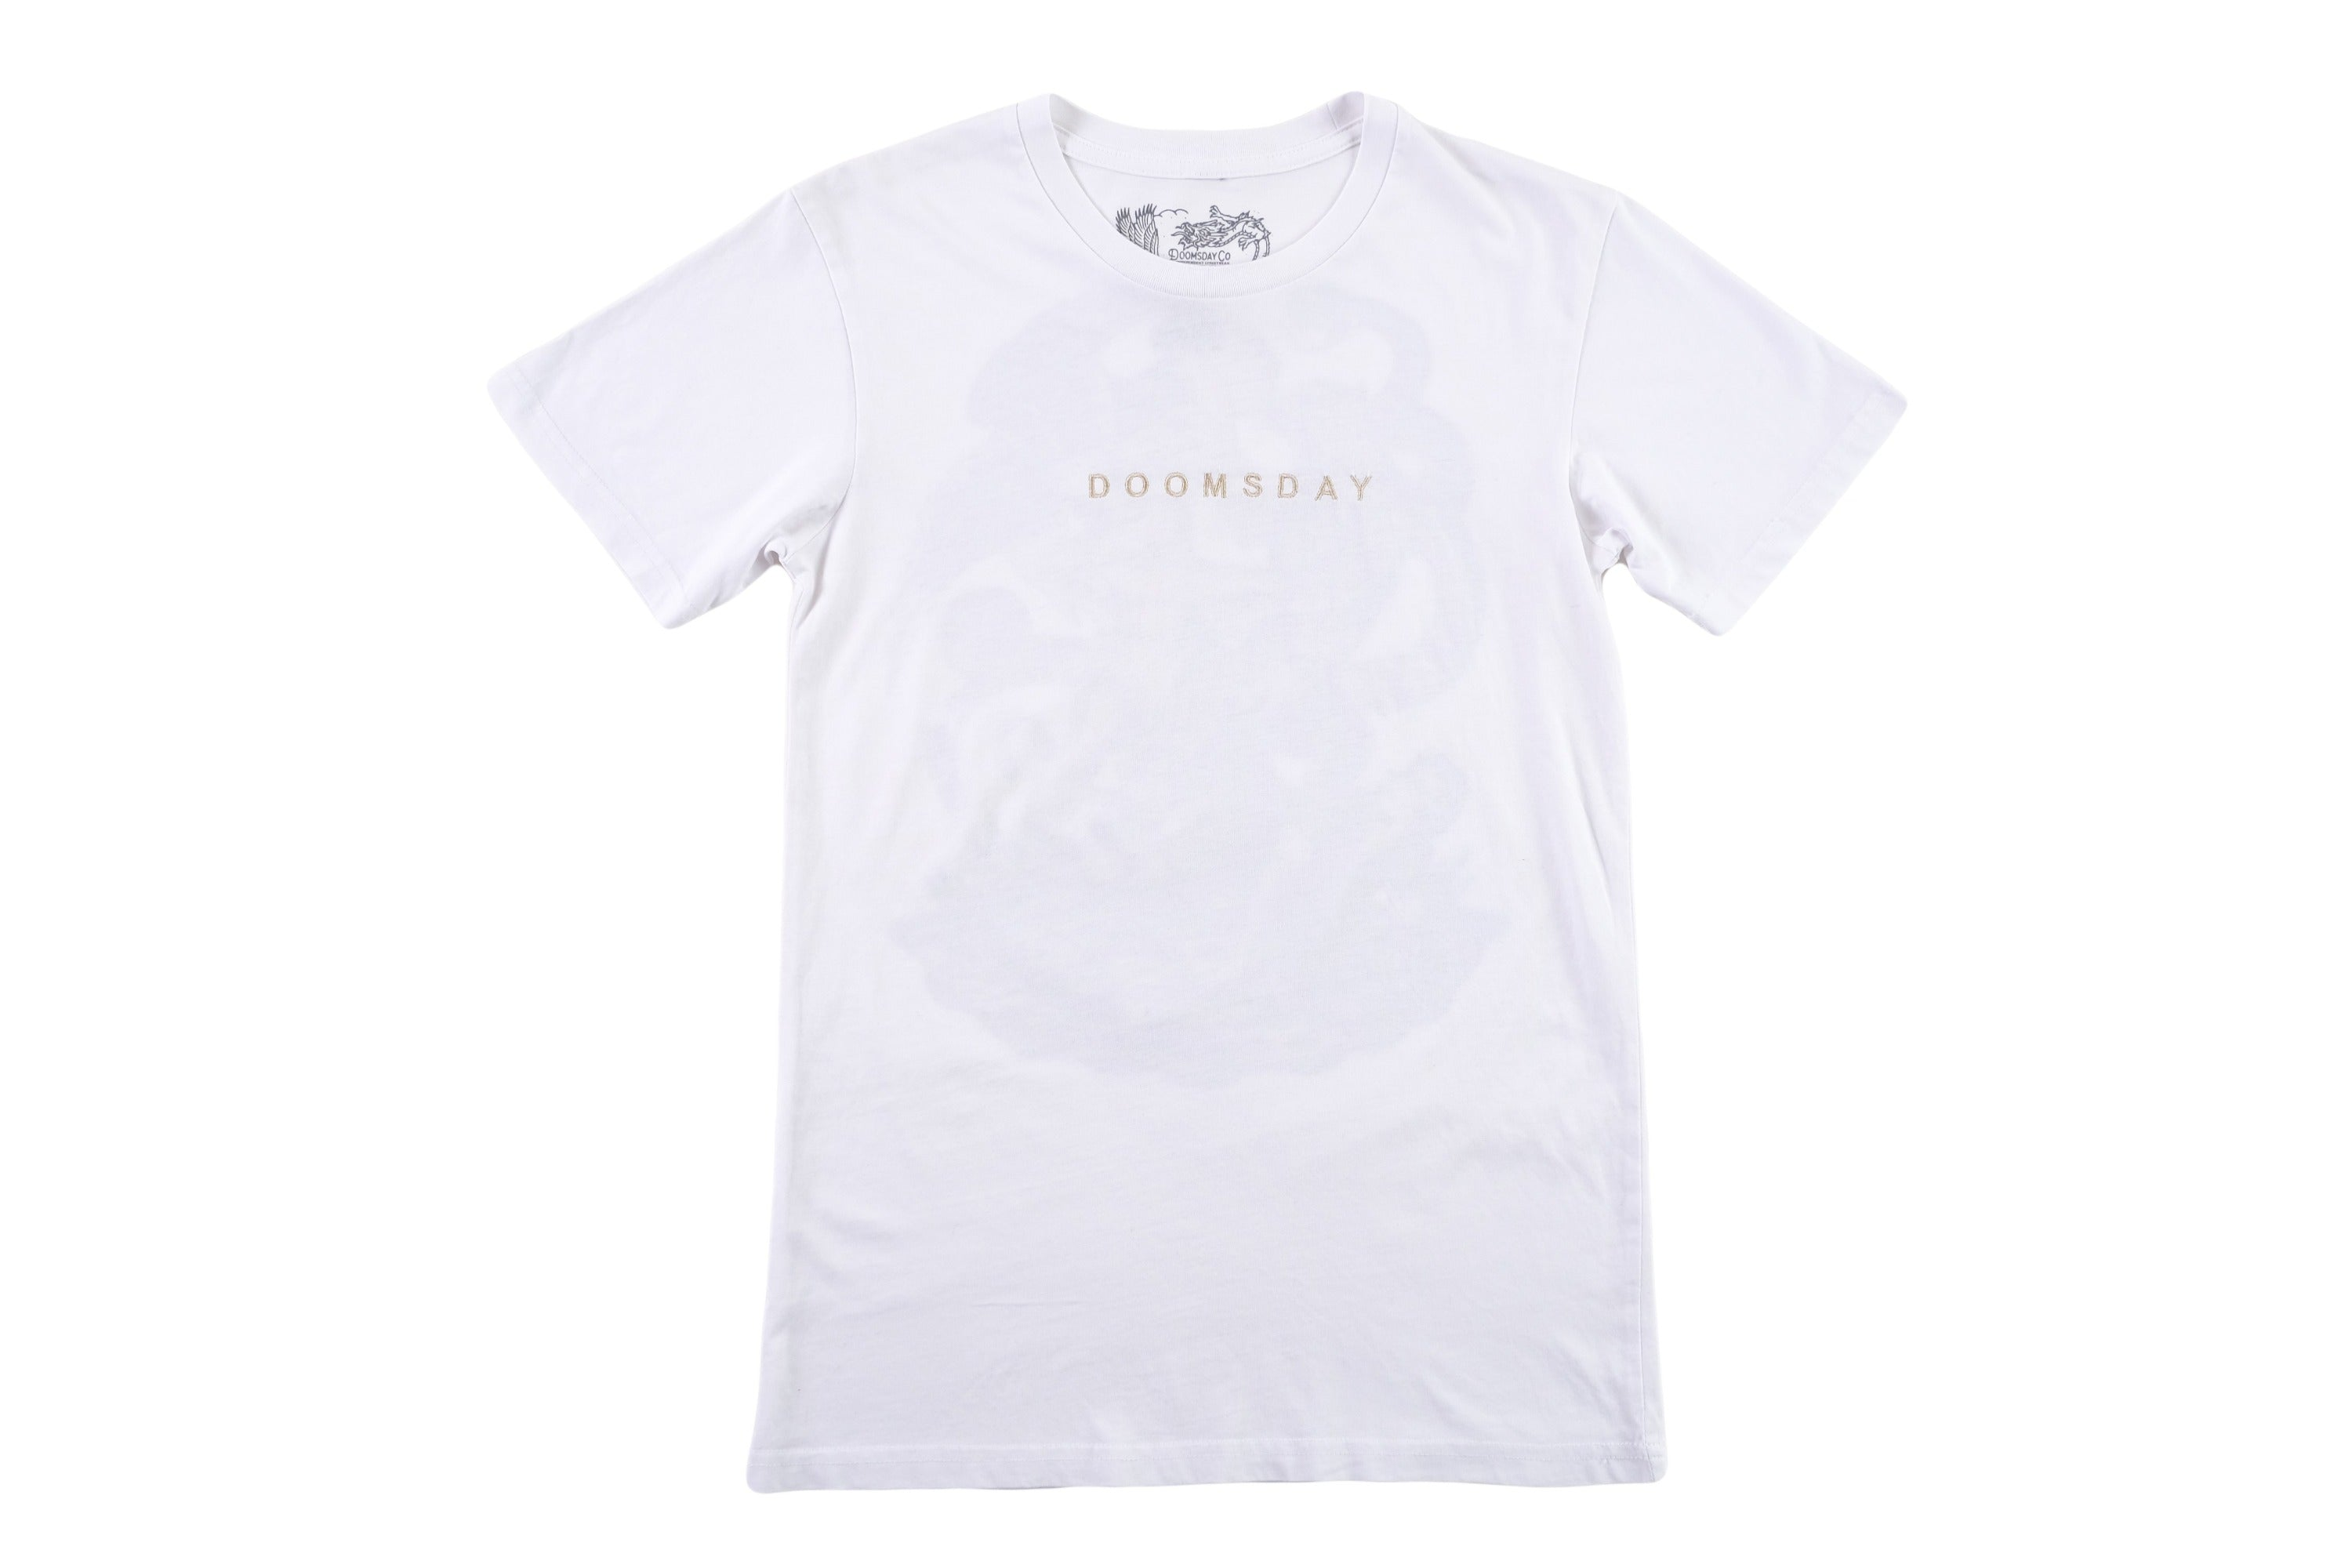 Semboy Battle T-shirt White (NEW)